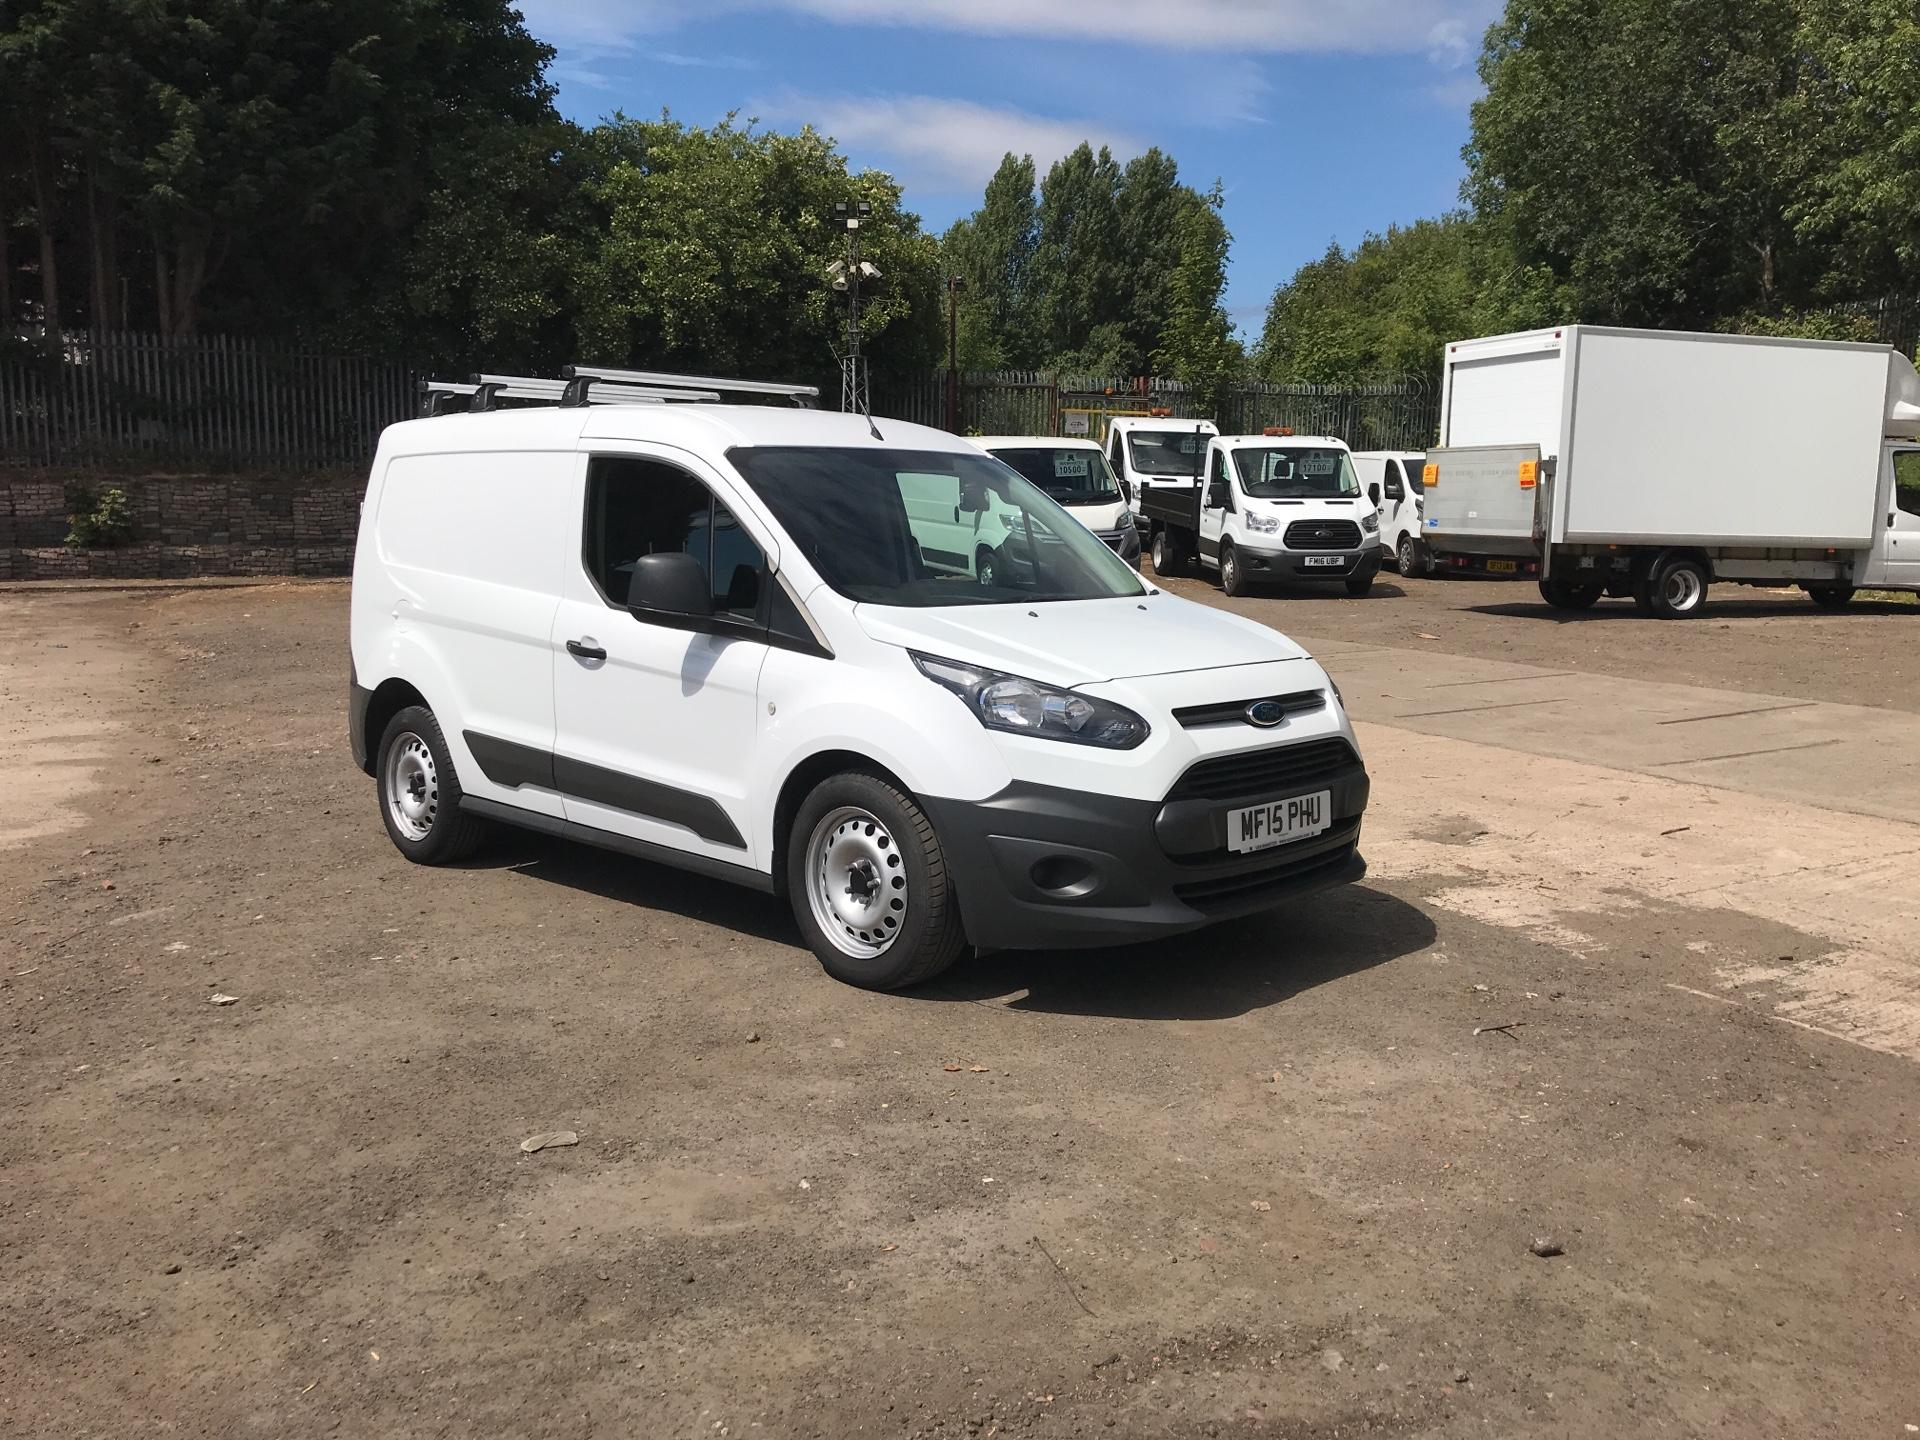 2015 Ford Transit Connect 200 L1 DIESEL 1.6 TDCI 90PS EURO 5 (MF15PHU)